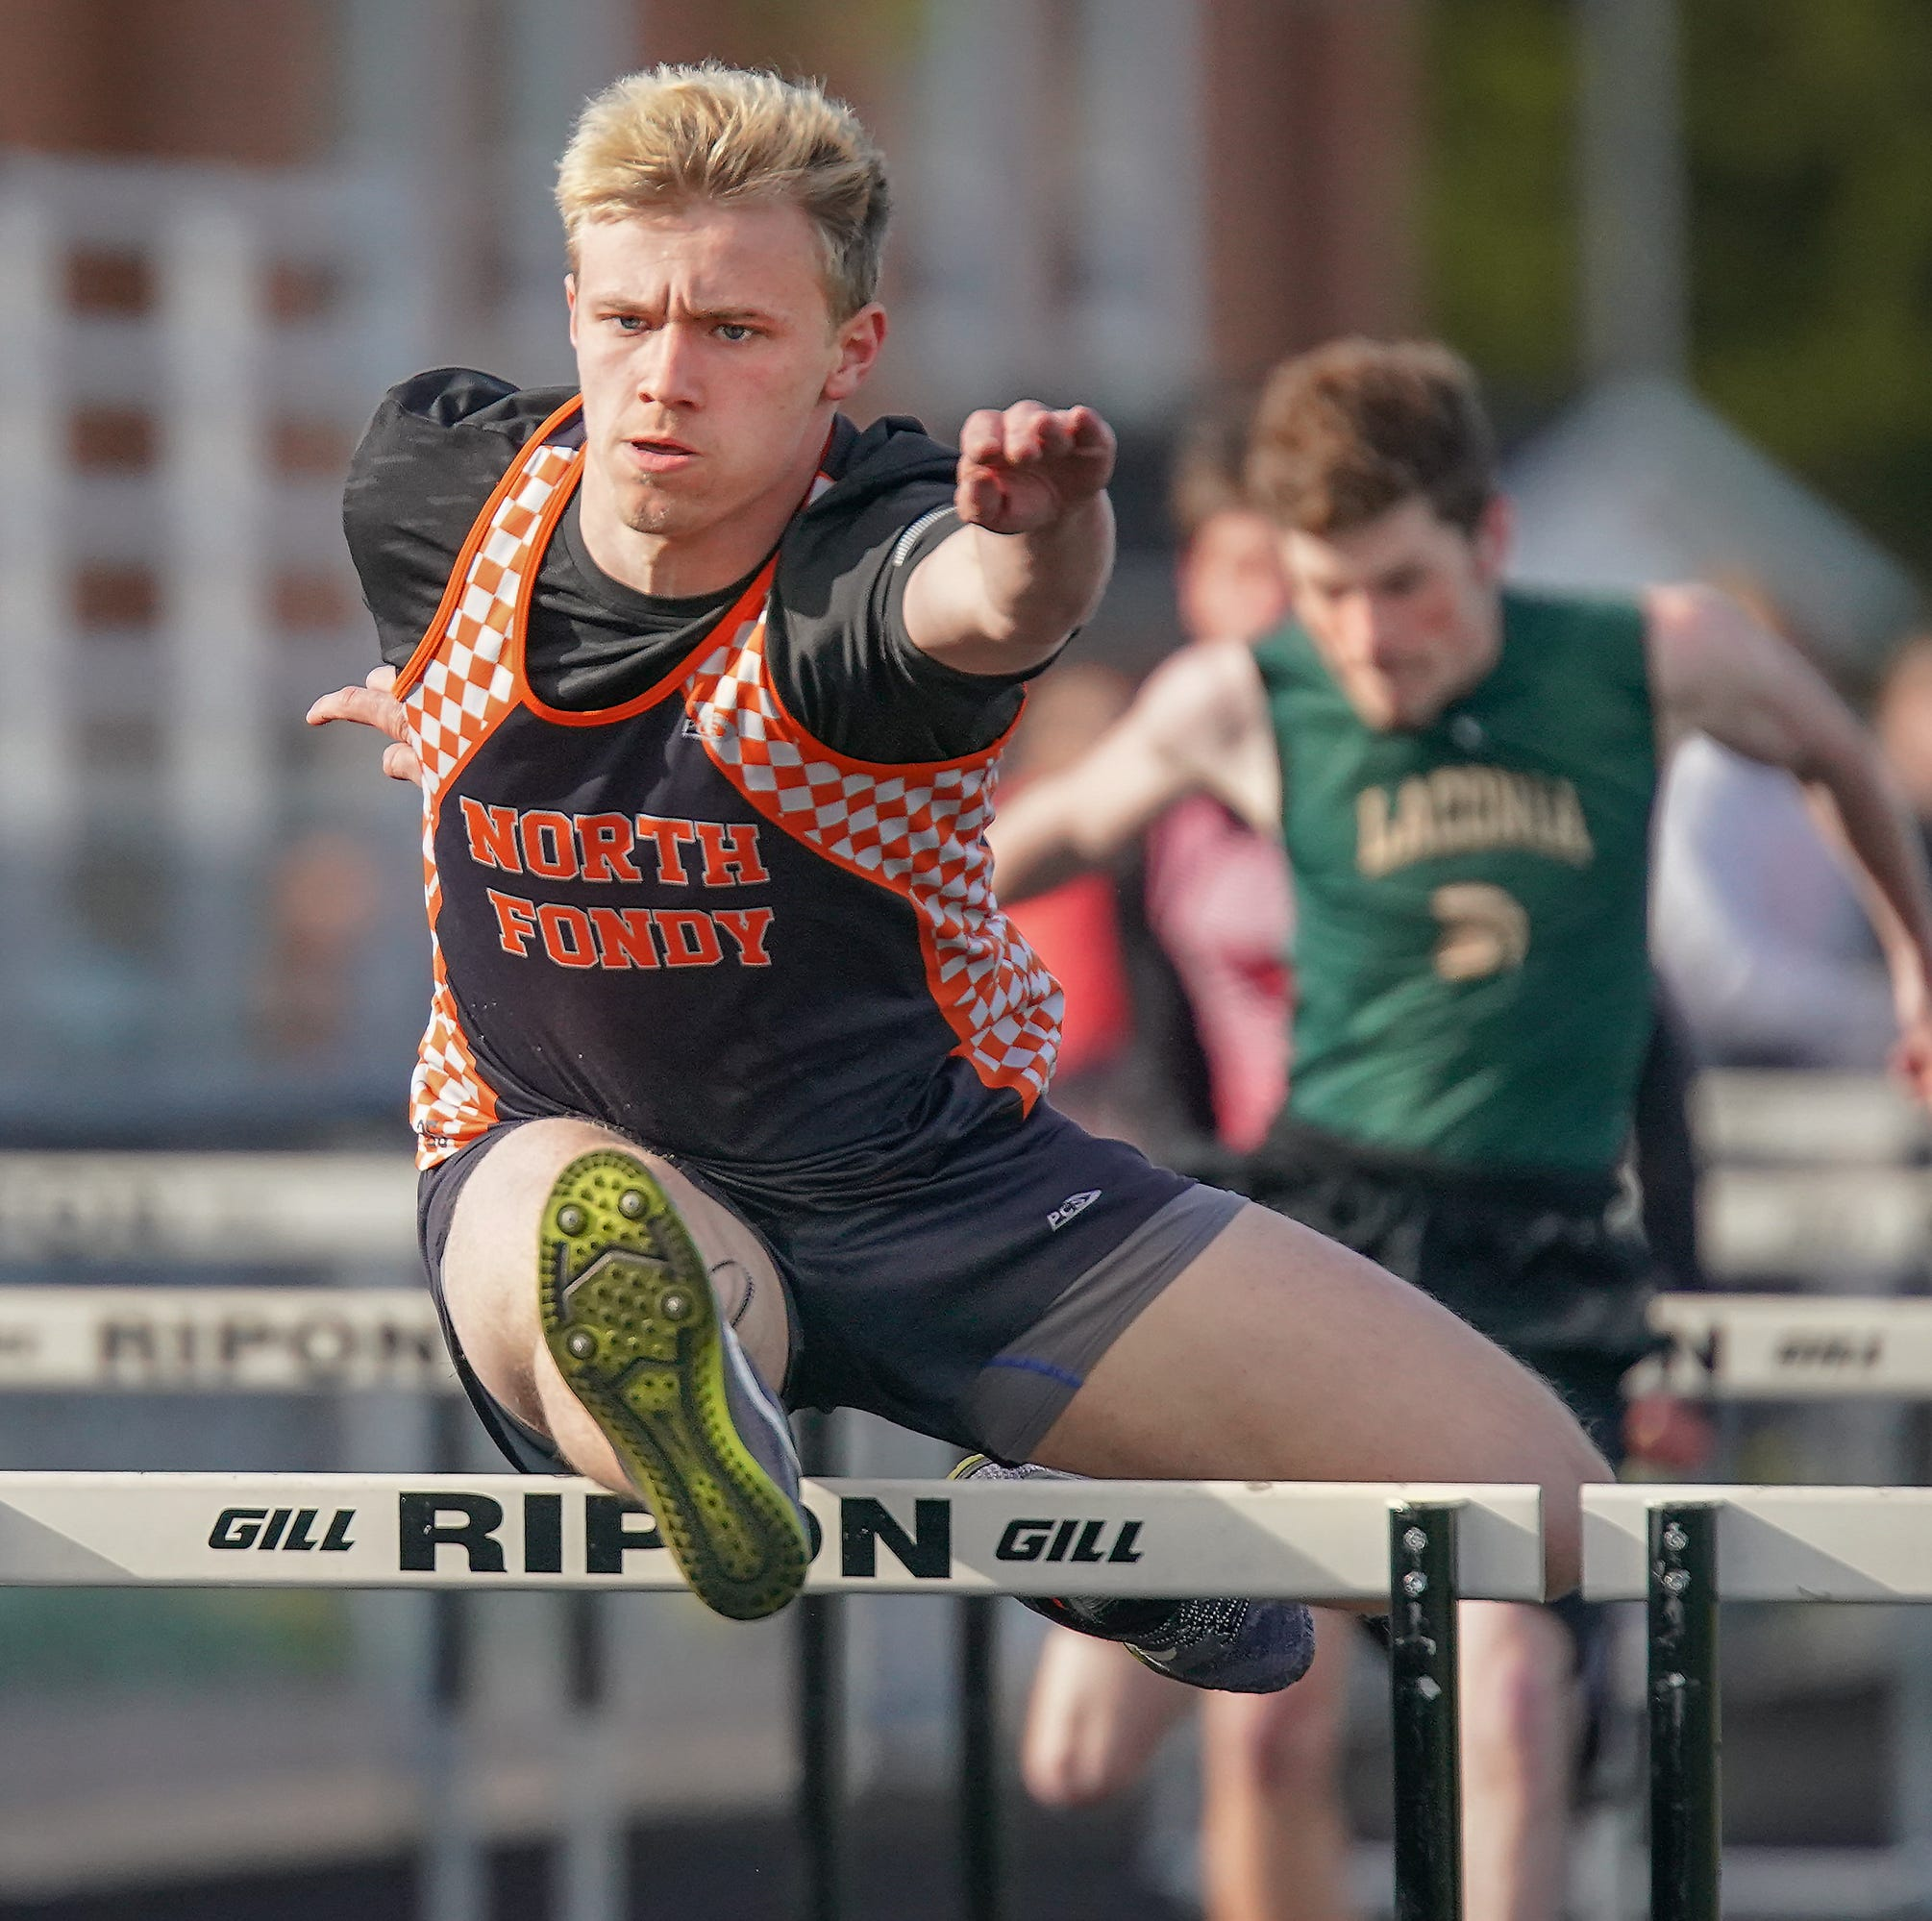 High school: Monday's track regionals